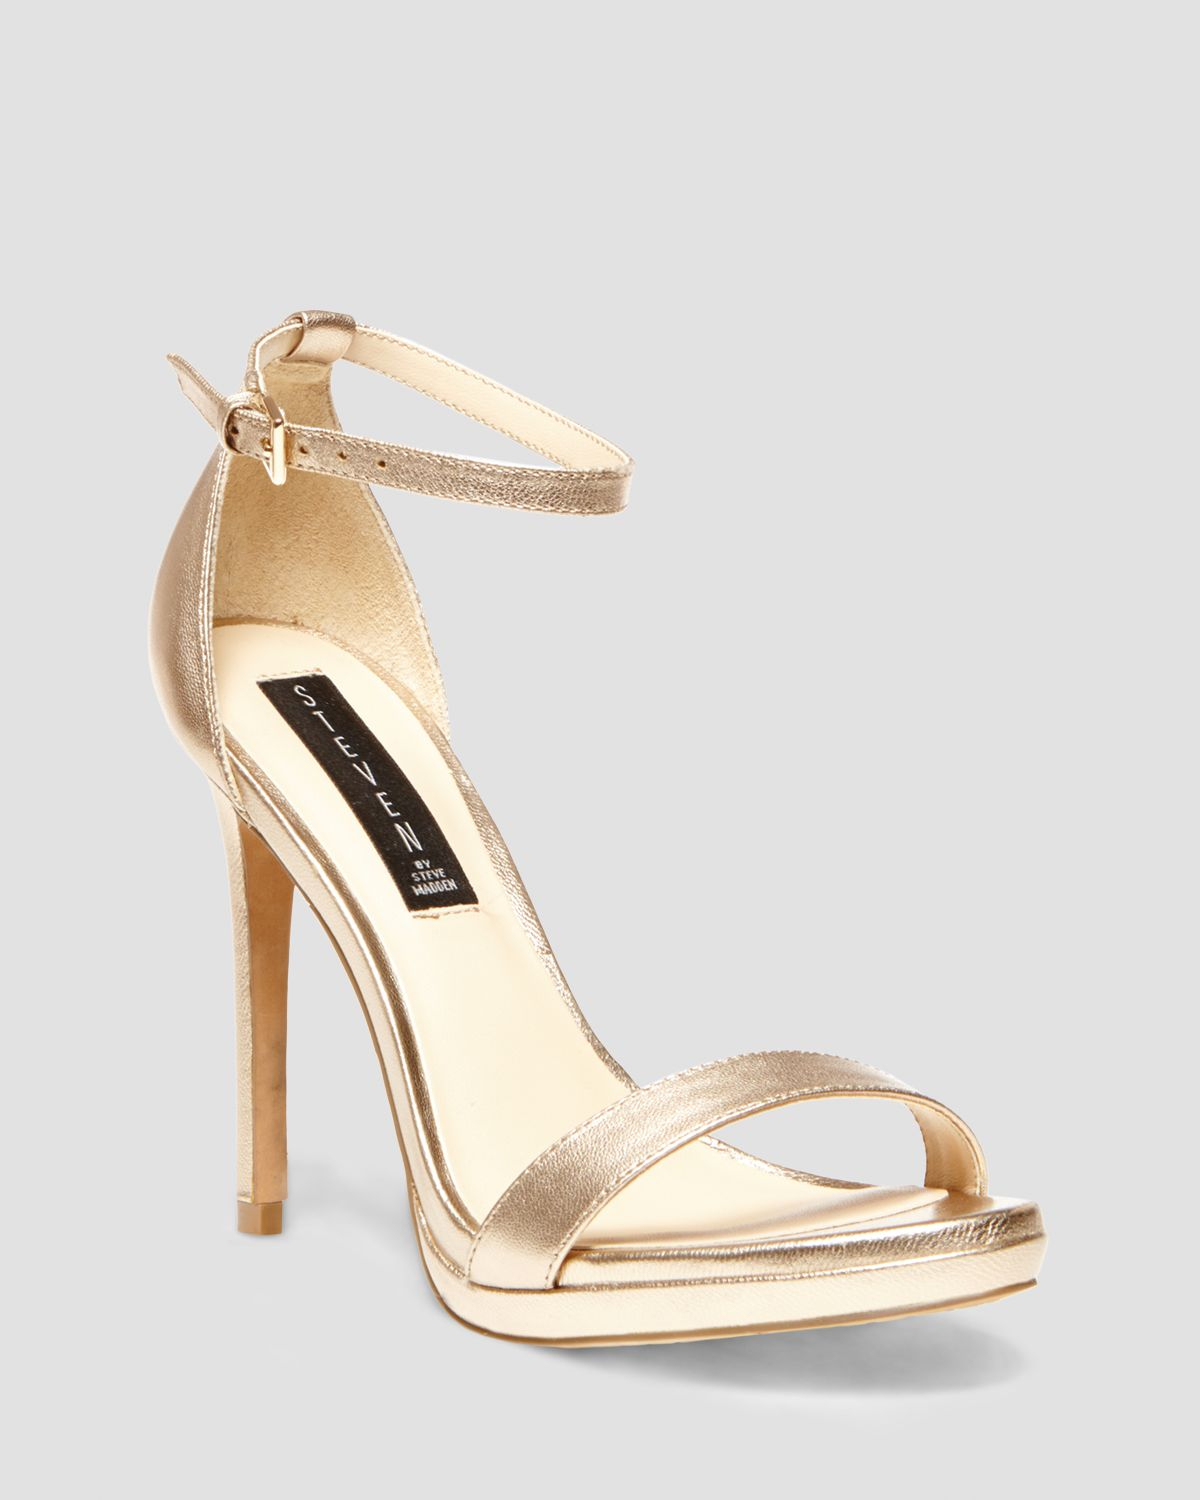 steven by steve madden sandals rykie ankle strap high heel in gold lyst. Black Bedroom Furniture Sets. Home Design Ideas